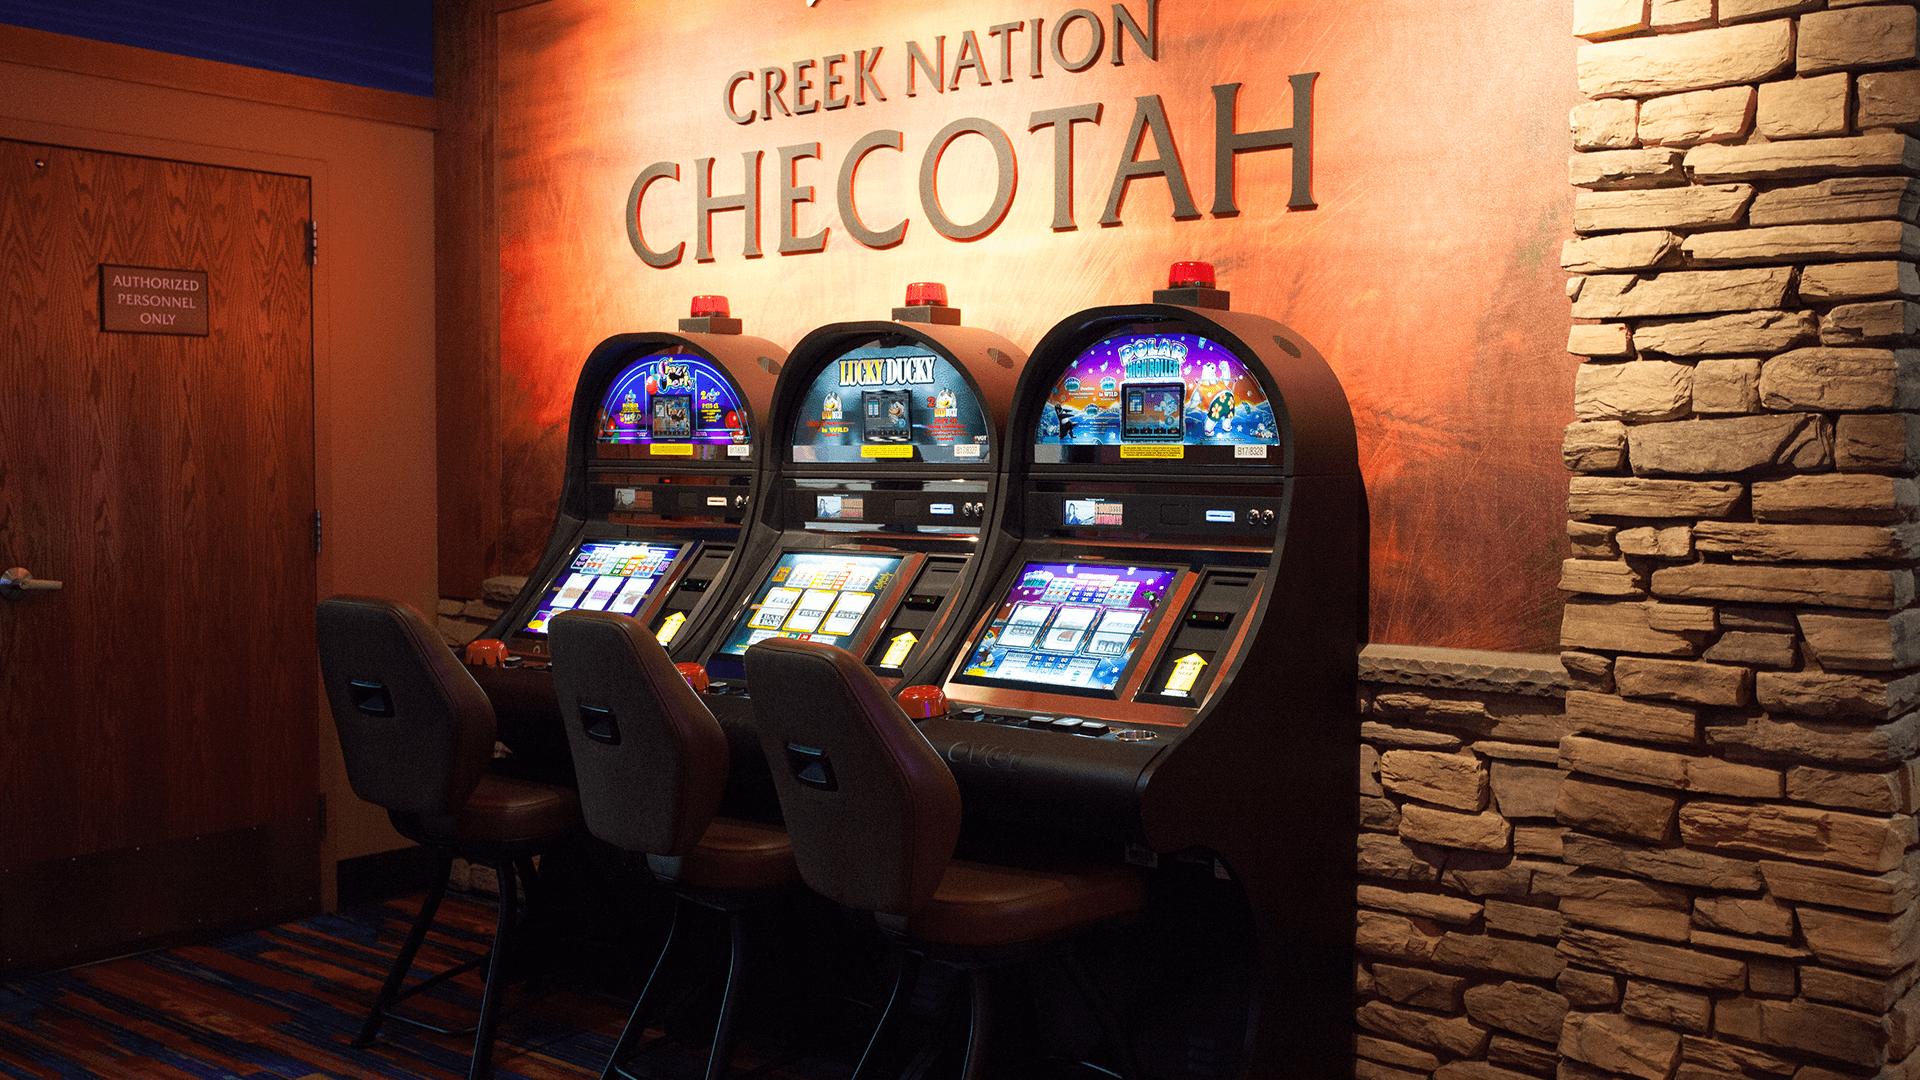 Creek Nation Casino Checotah games